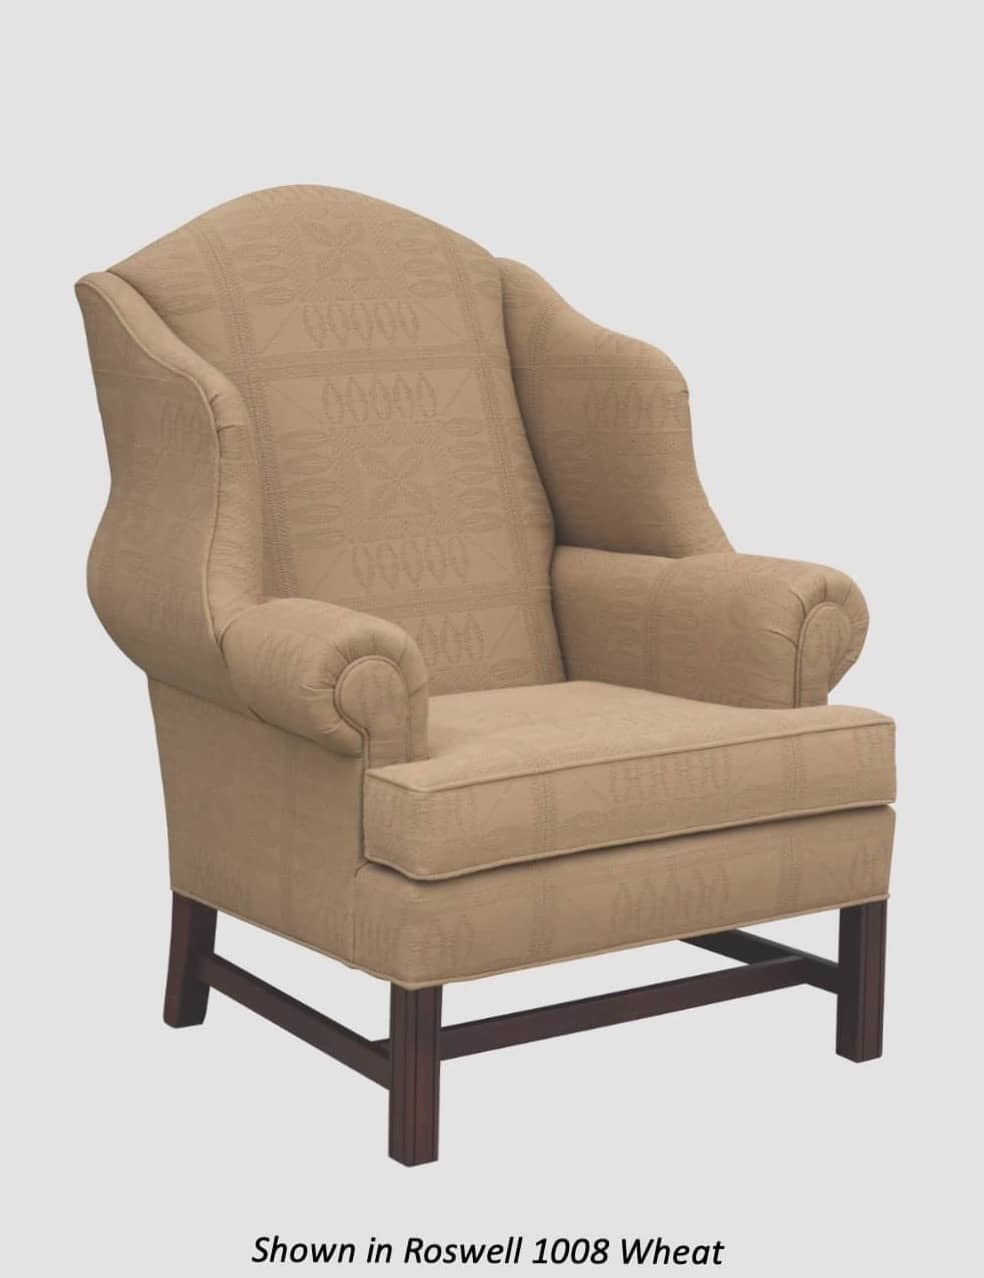 Town & Country Furnishings Vermont Chair from the American Country Collection